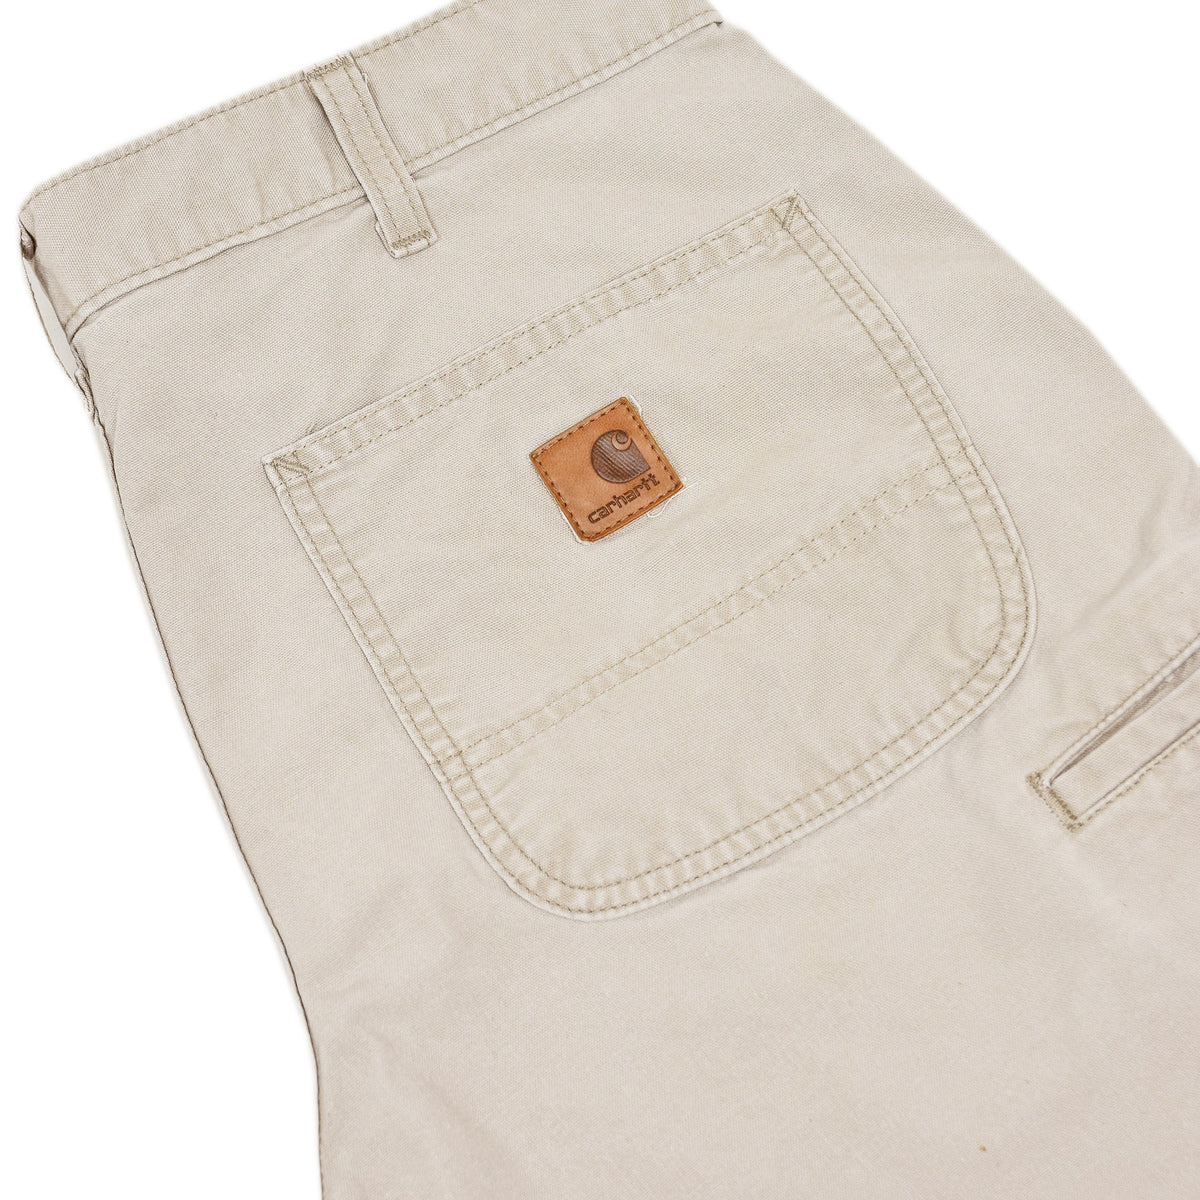 Vintage Carhartt Stone Cotton Canvas Utility Work Shorts 32 W back details